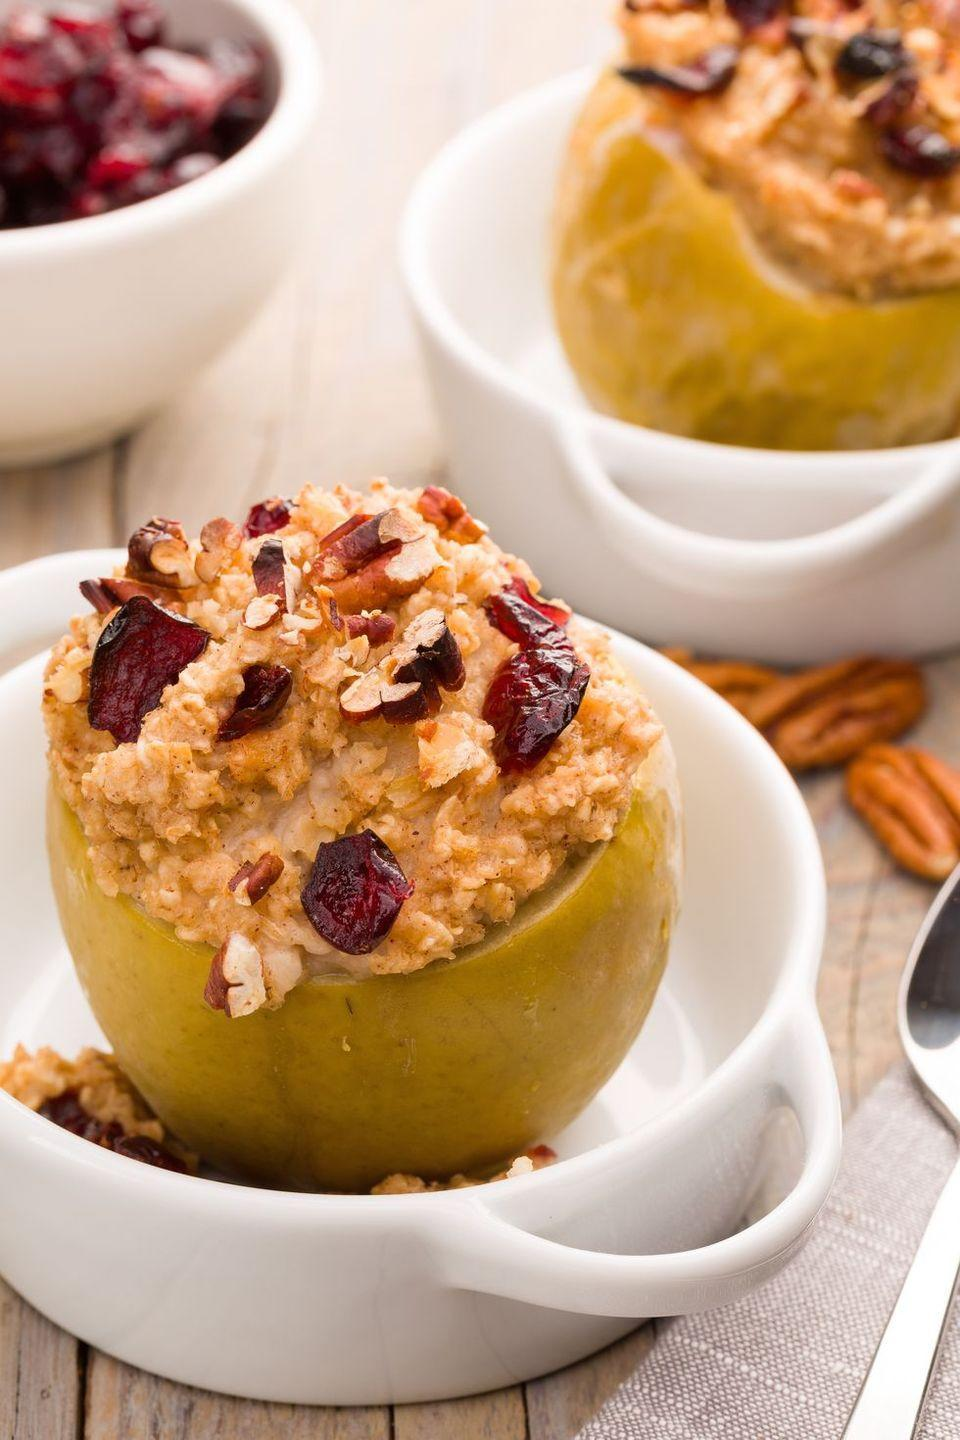 """<p>The only breakfast you should eat all autumn. Stuffed with porridge oats, cinnamon, and maple syrup, these baked apples are a good-for-you start to the day.</p><p>Get the <a href=""""https://www.delish.com/uk/cooking/recipes/a29017650/breakfast-baked-apples-recipe/"""" rel=""""nofollow noopener"""" target=""""_blank"""" data-ylk=""""slk:Baked Apple Breakfast"""" class=""""link rapid-noclick-resp"""">Baked Apple Breakfast</a> recipe.</p>"""